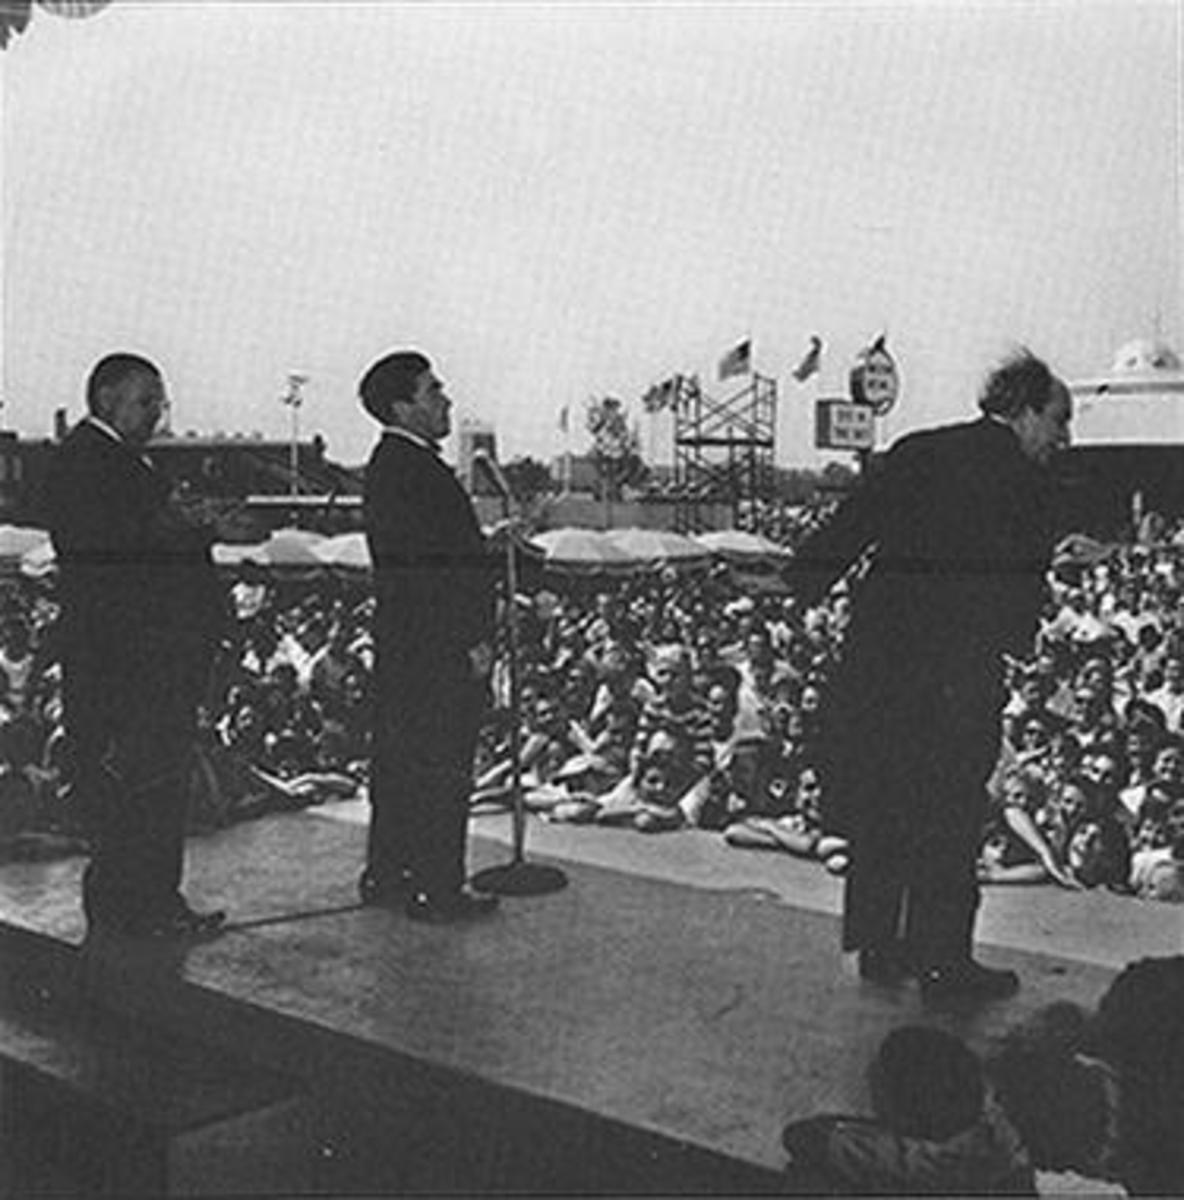 The Three Stooges performing at Freedomland.